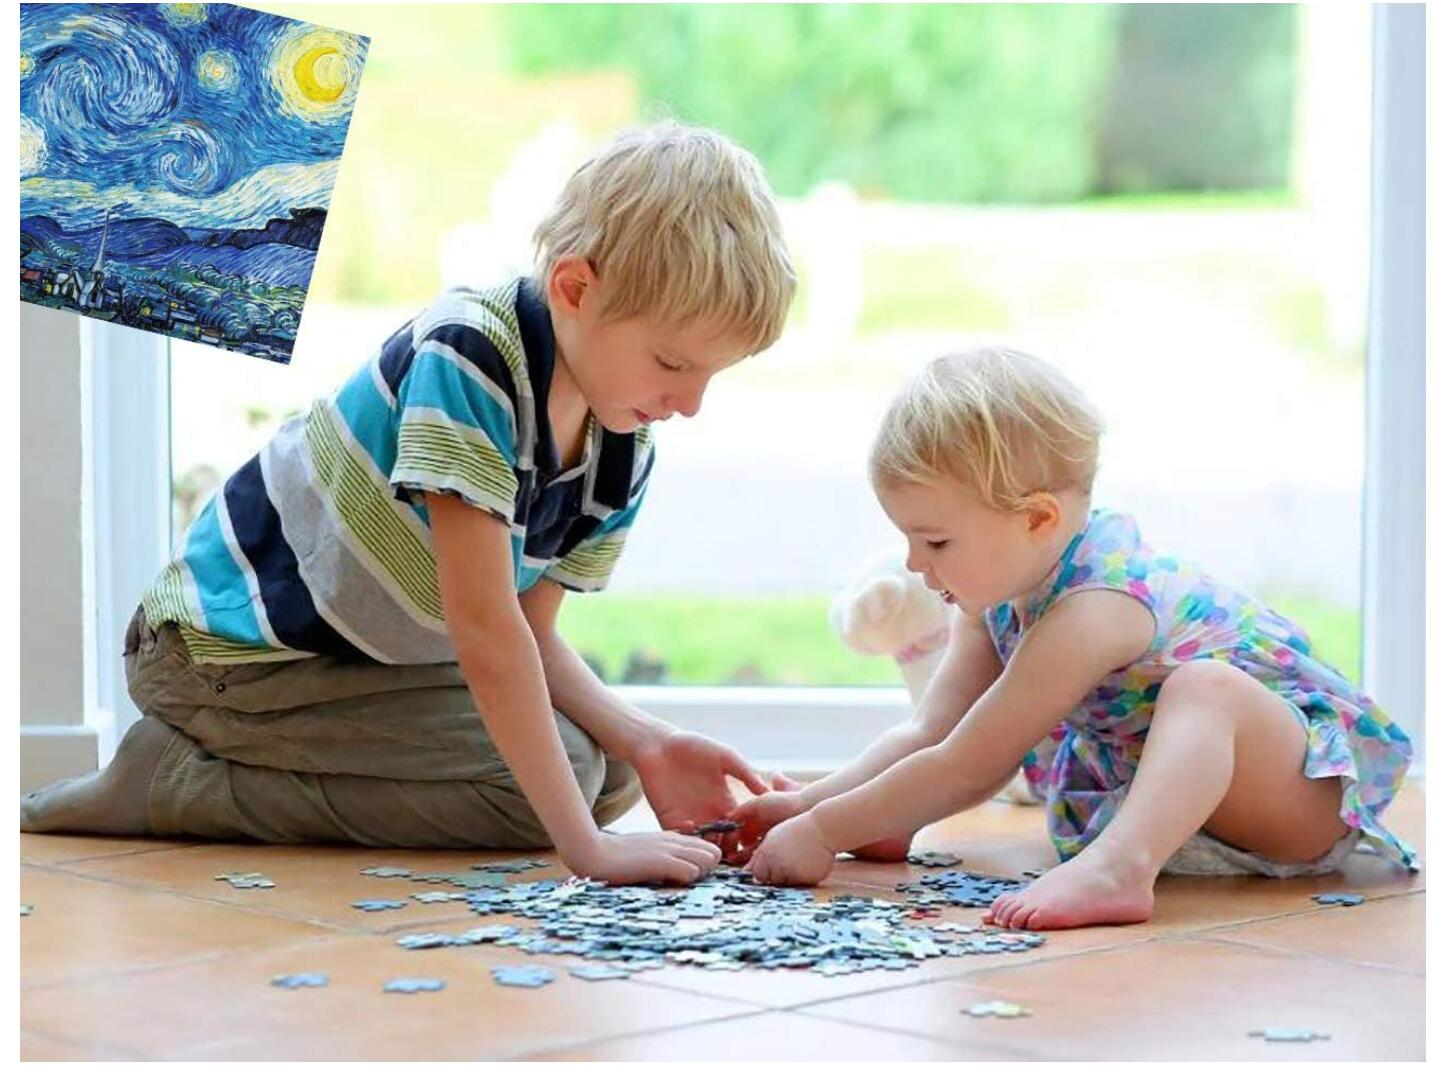 1000PCS Jigsaw Puzzle Kids Adults, Large Intellectual Educational Game, Starry Sky Art Project for Home Wall Decor